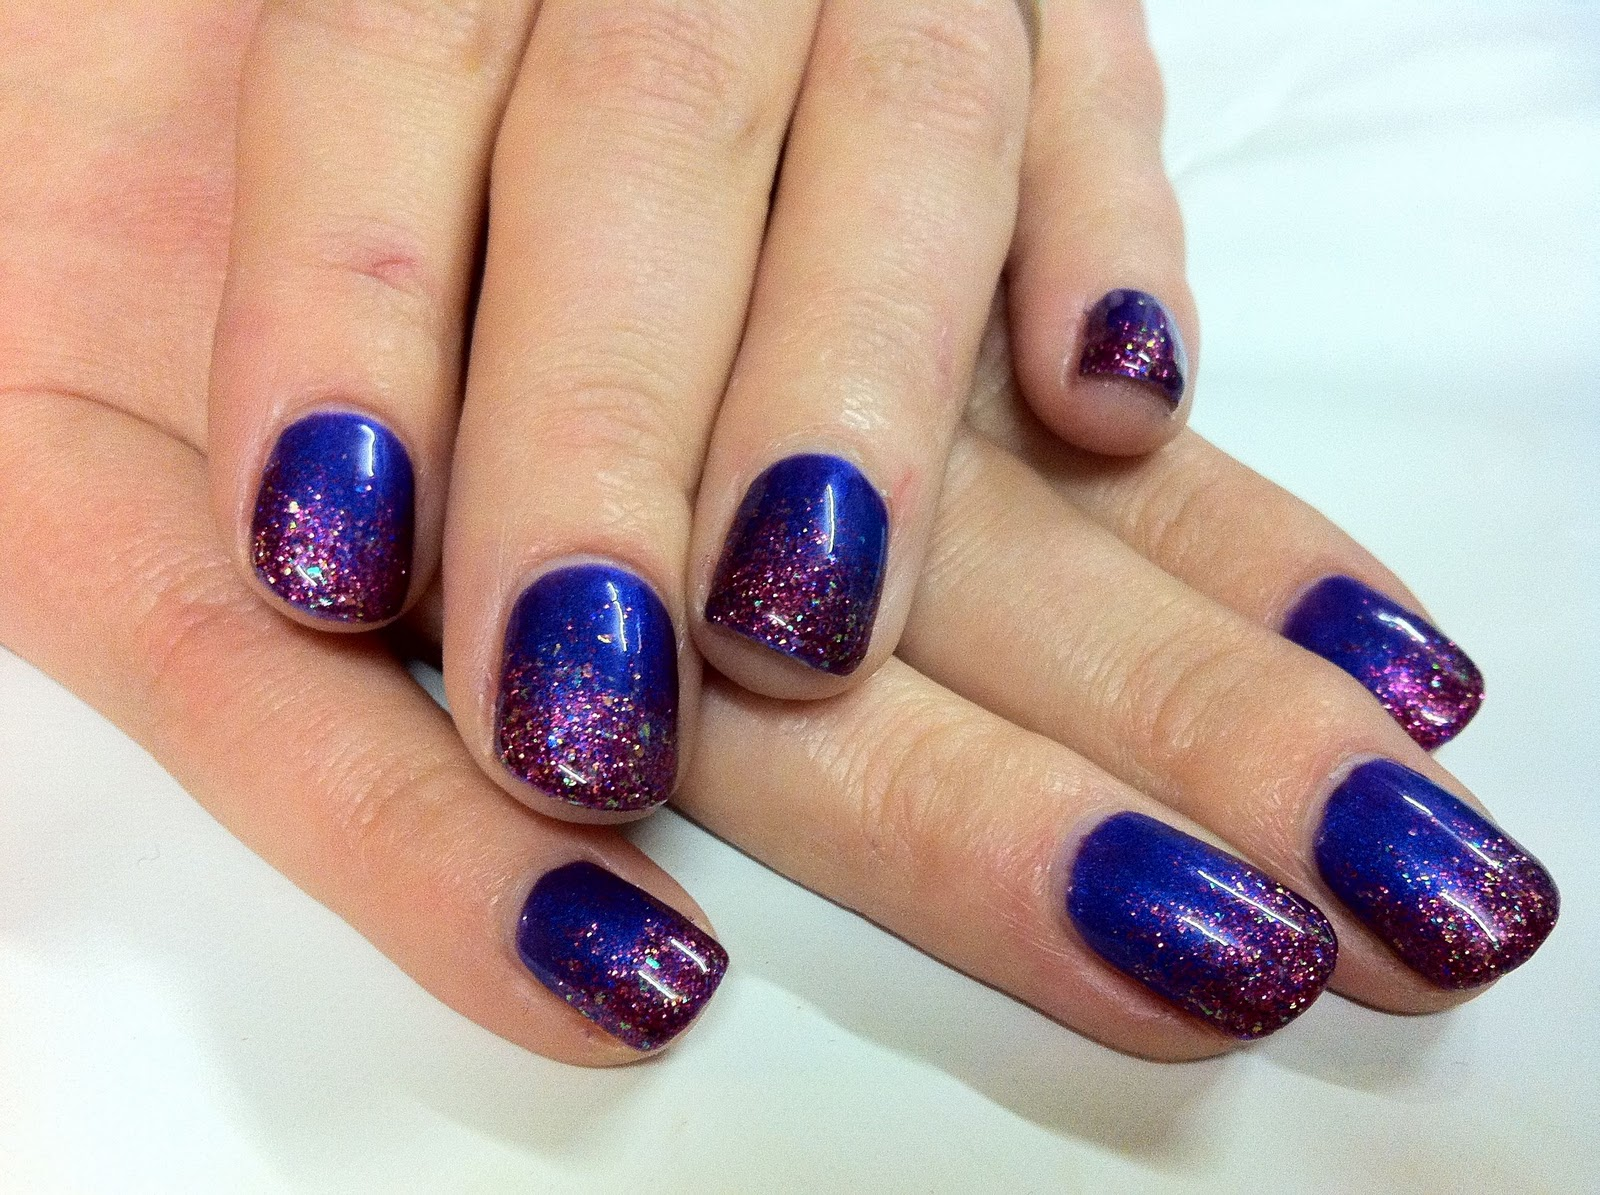 The Extraordinary Purple nails with glitter Image